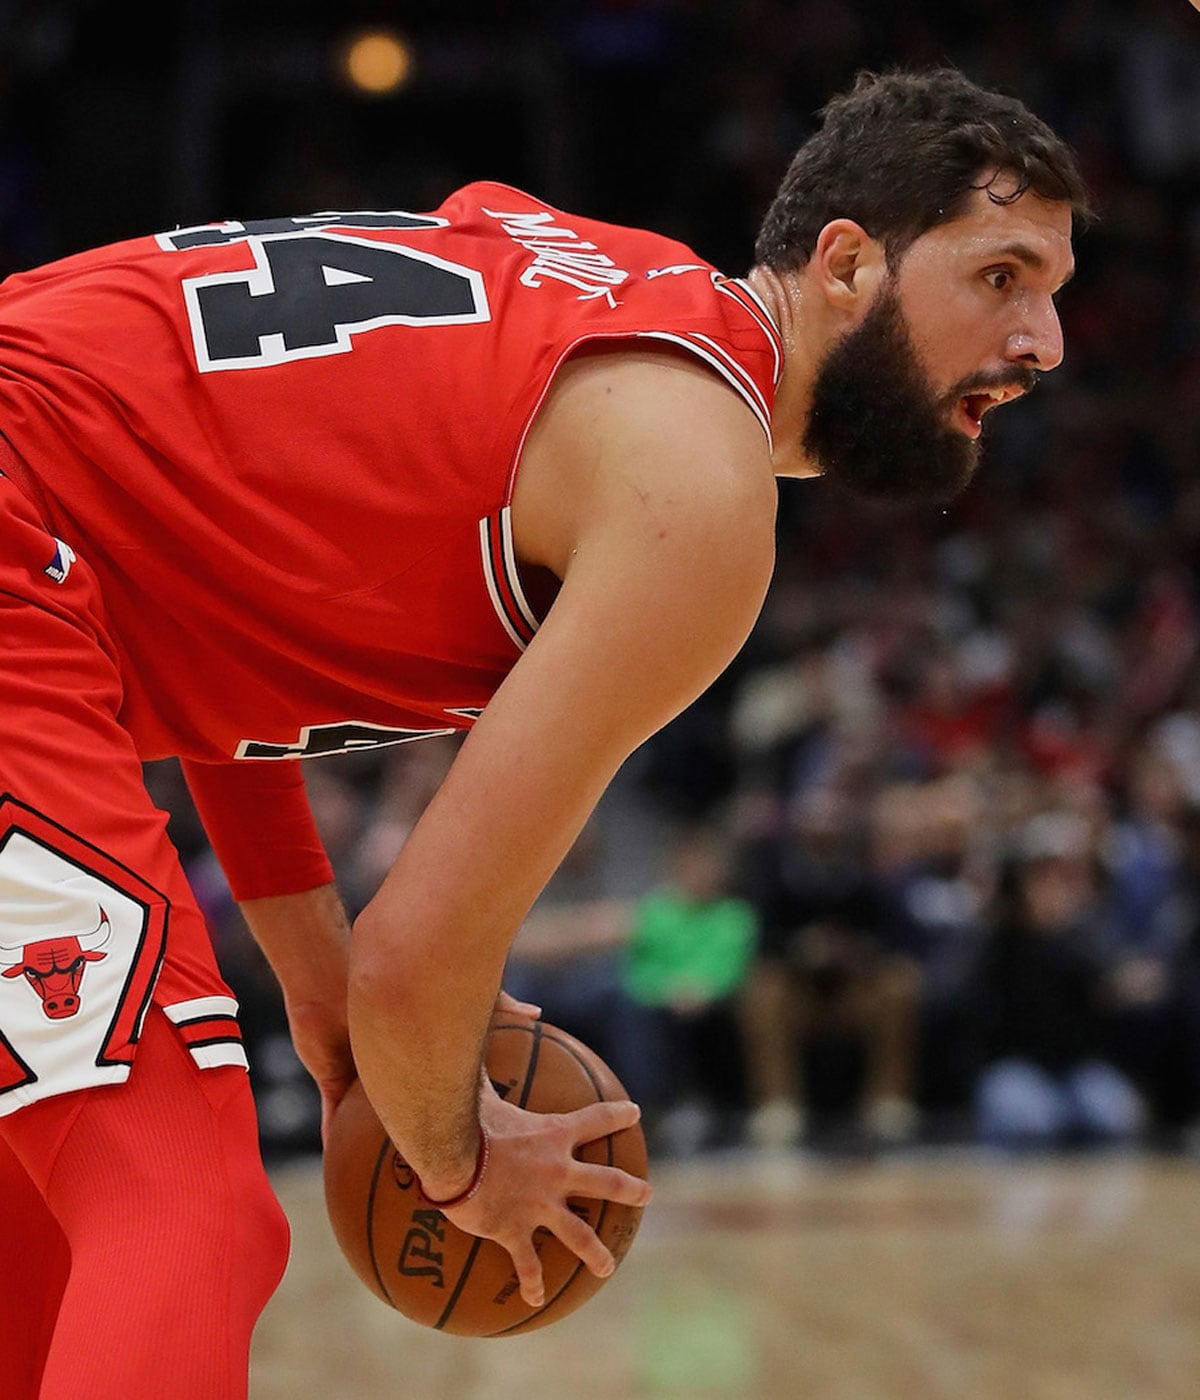 Nikola Mirotic #44 of the Chicago Bulls moves against the Philadelphia 76ers at the United Center on December 18, 2017 in Chicago, Illinois.